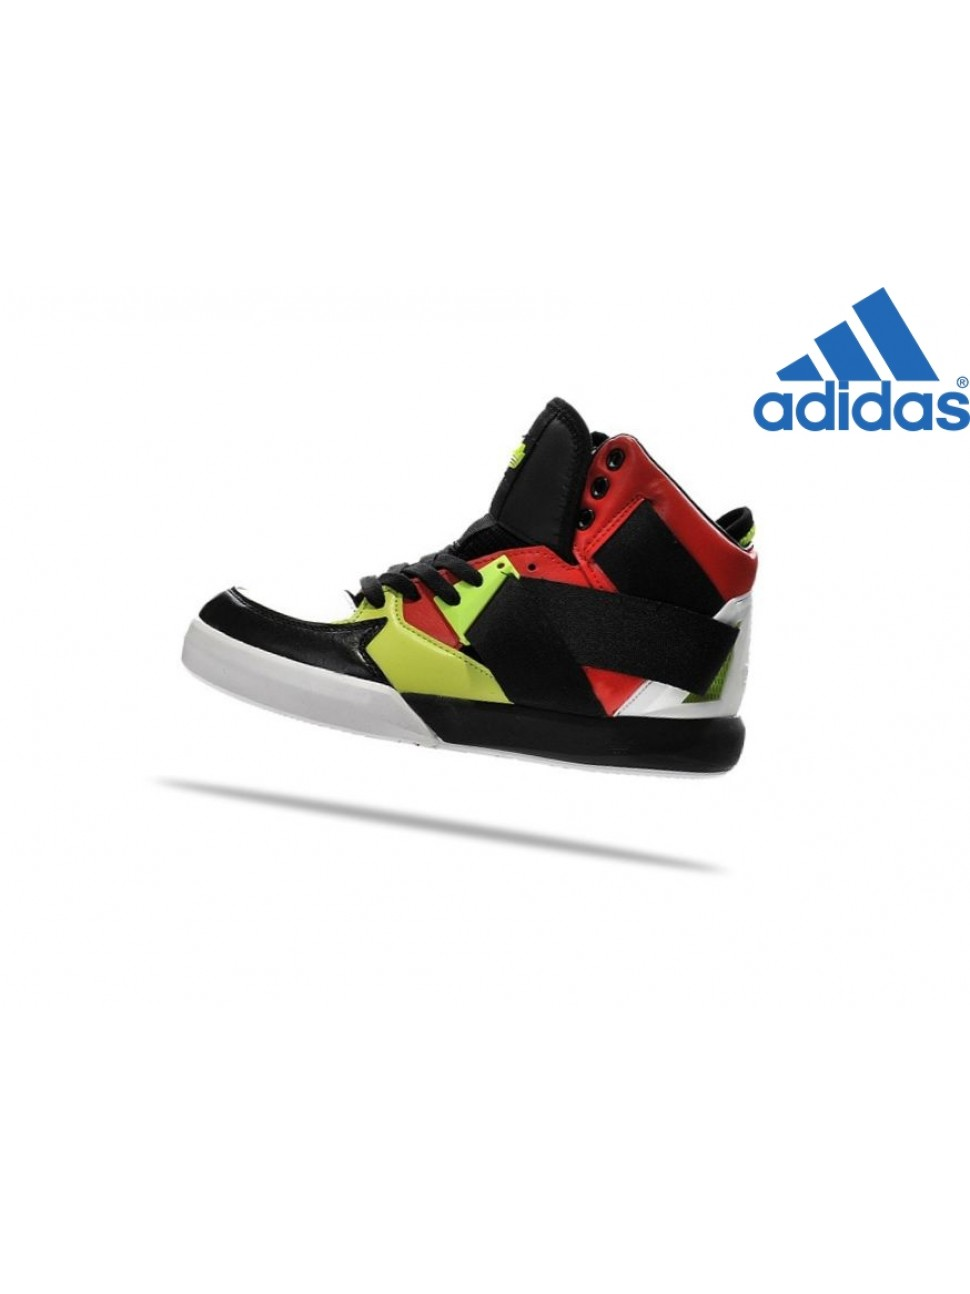 Homme Chaussures Soldes Adidas C-10 High Noir Blanche Rouge Chaux